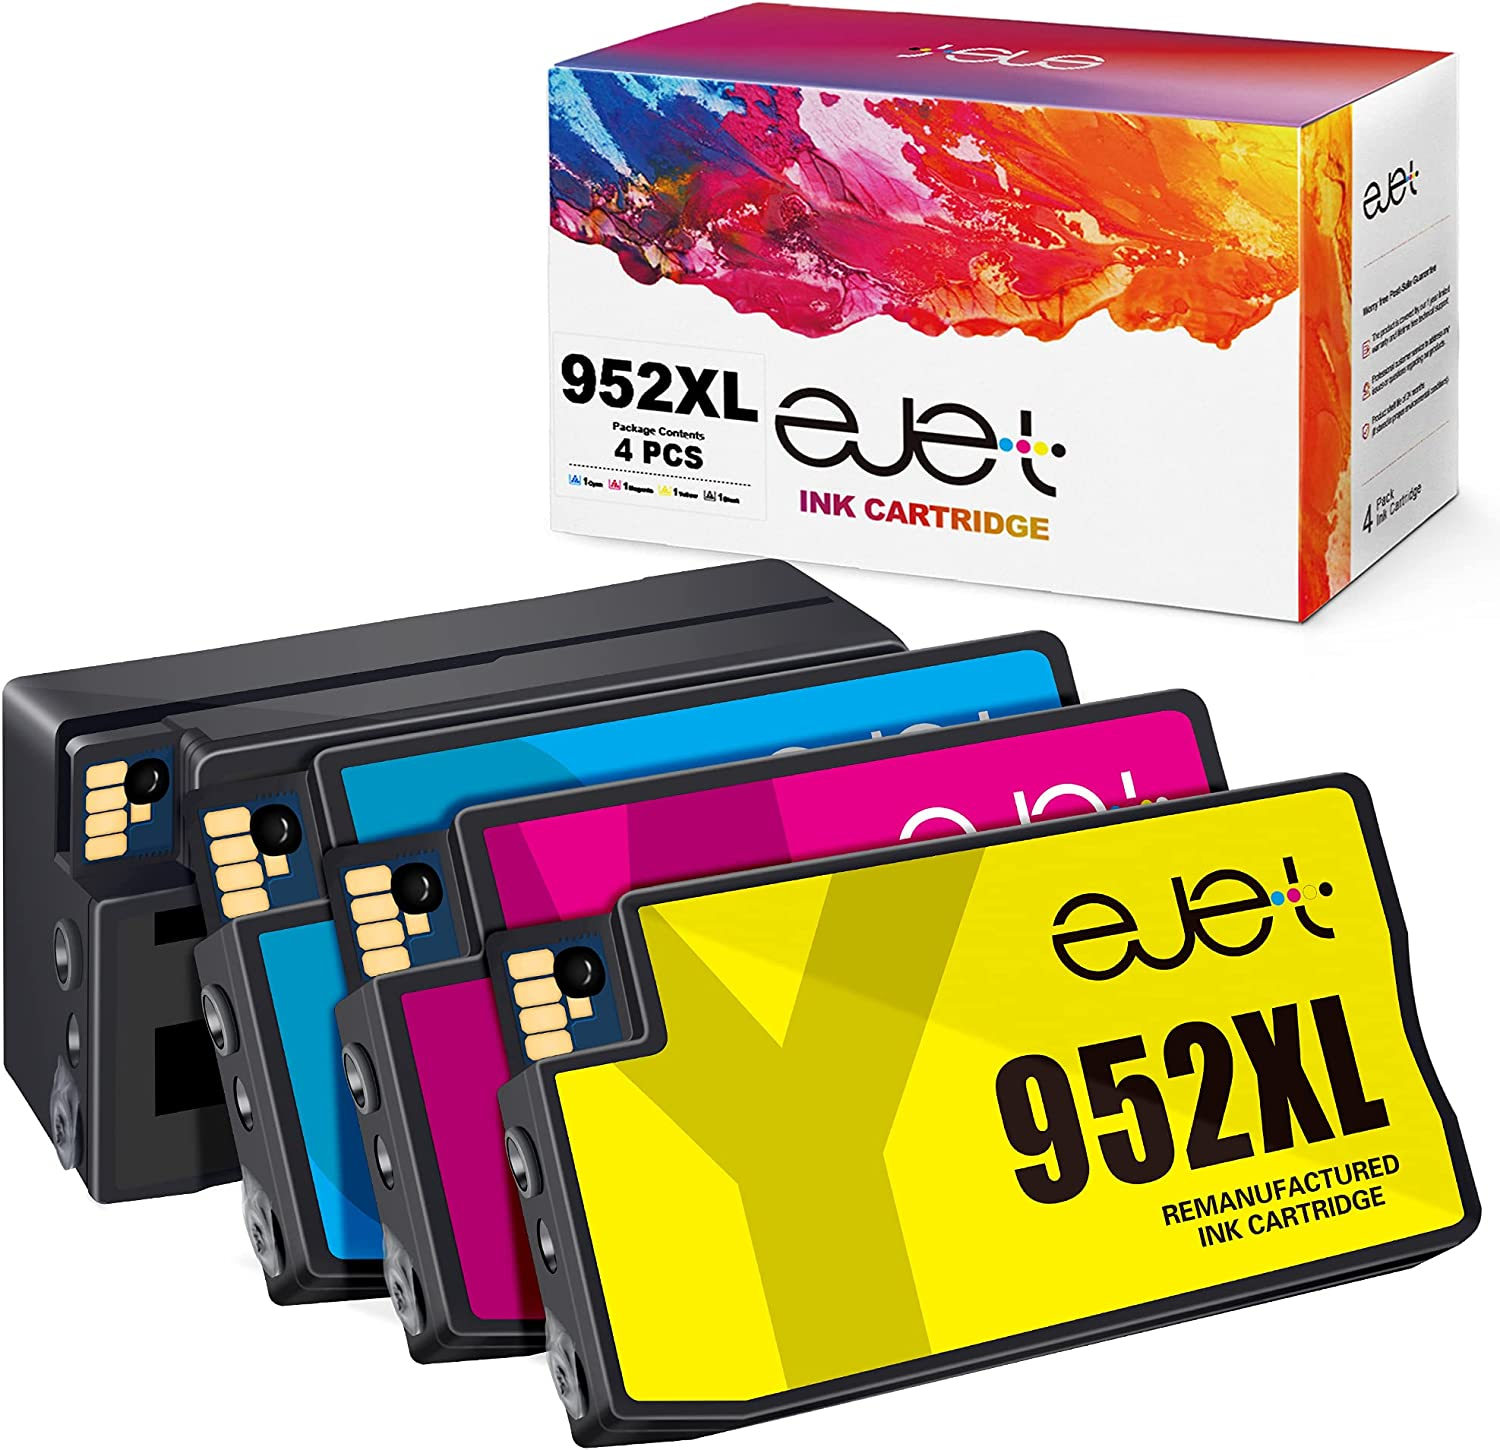 ejet Remanufactured 952 XL 952XL Ink Cartridges Replacement for HP 952XL Ink Cartridges Combo Pack for OfficeJet Pro 8710 8720 7740 8740 7720 8715 Printer(1 Black,1 Cyan,1 Magenta,1 Yellow, 4-Pack)